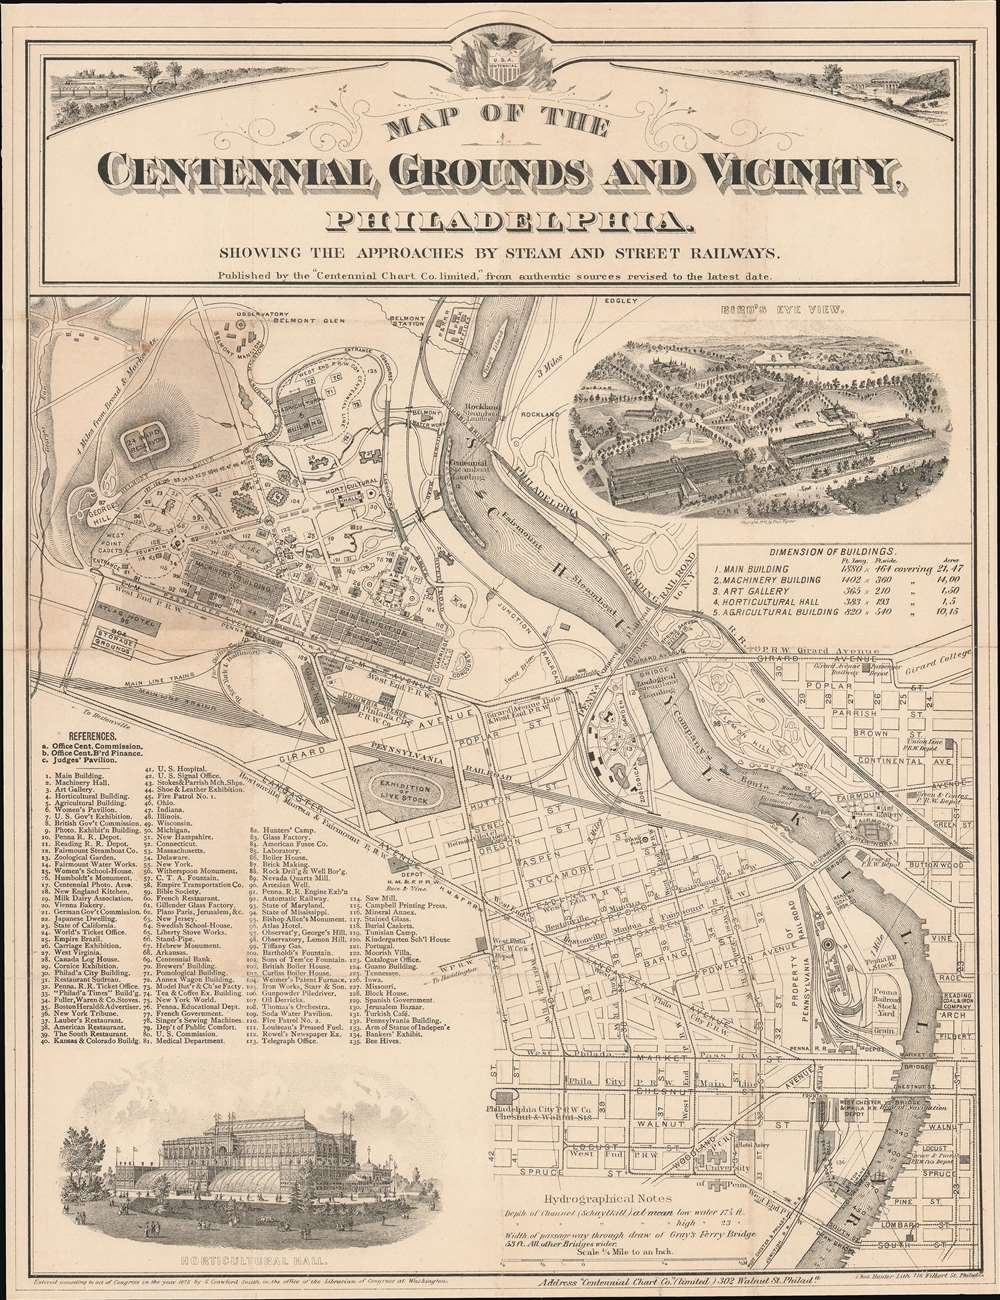 Map of the Centennial Grounds and Vicinity, Philadelphia. Showing the Approaches by Steam and Street Railways. - Main View